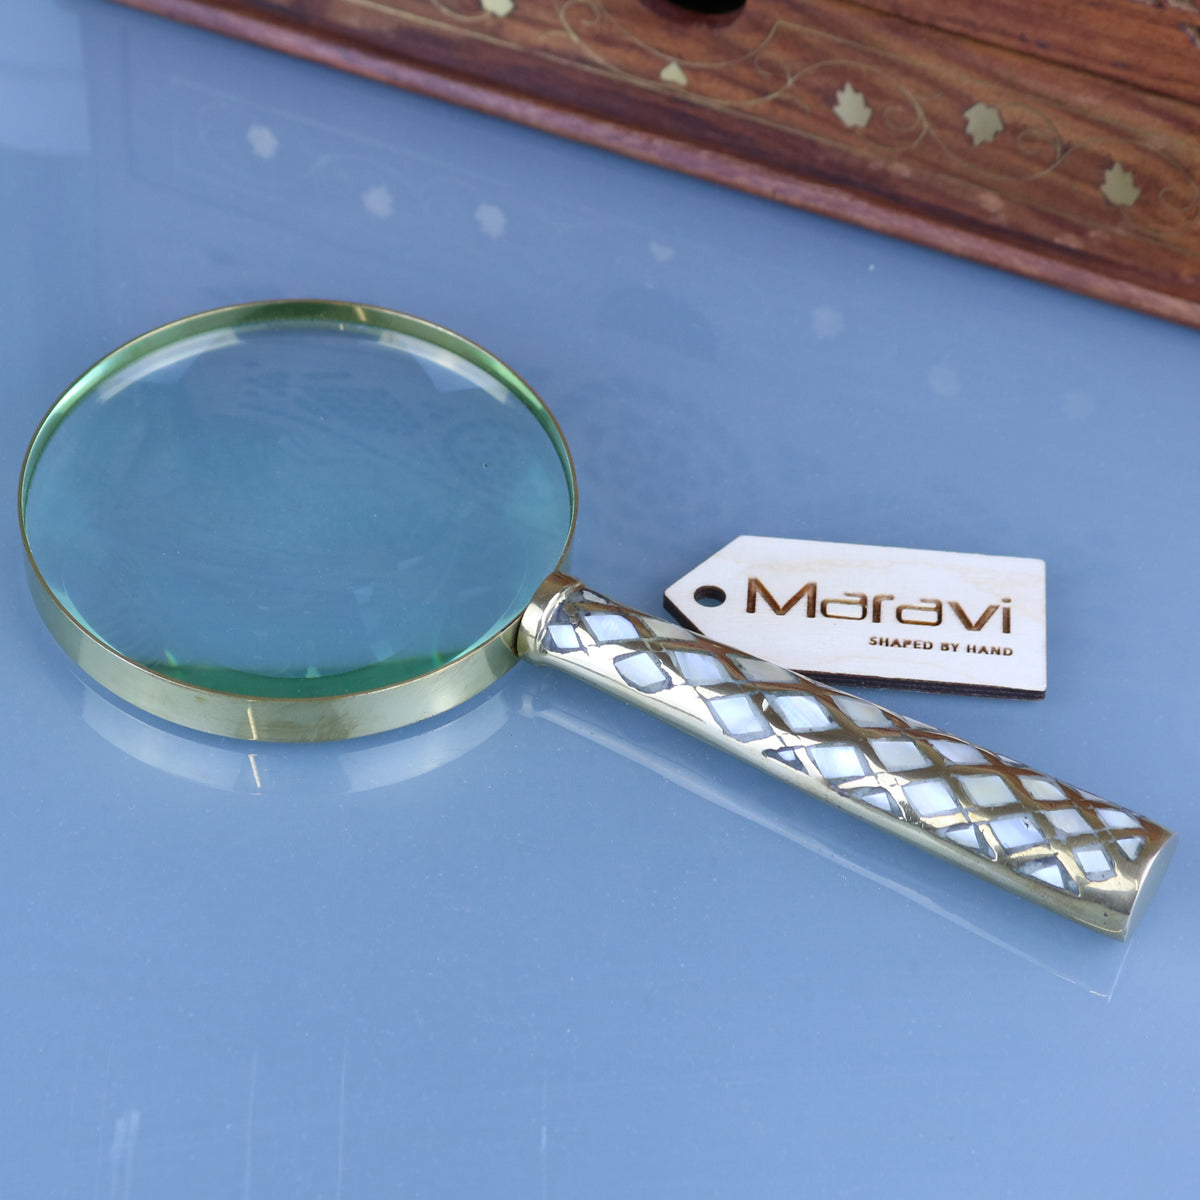 Zuari Brass Magnifying Glass and Letter Opener Magnifier